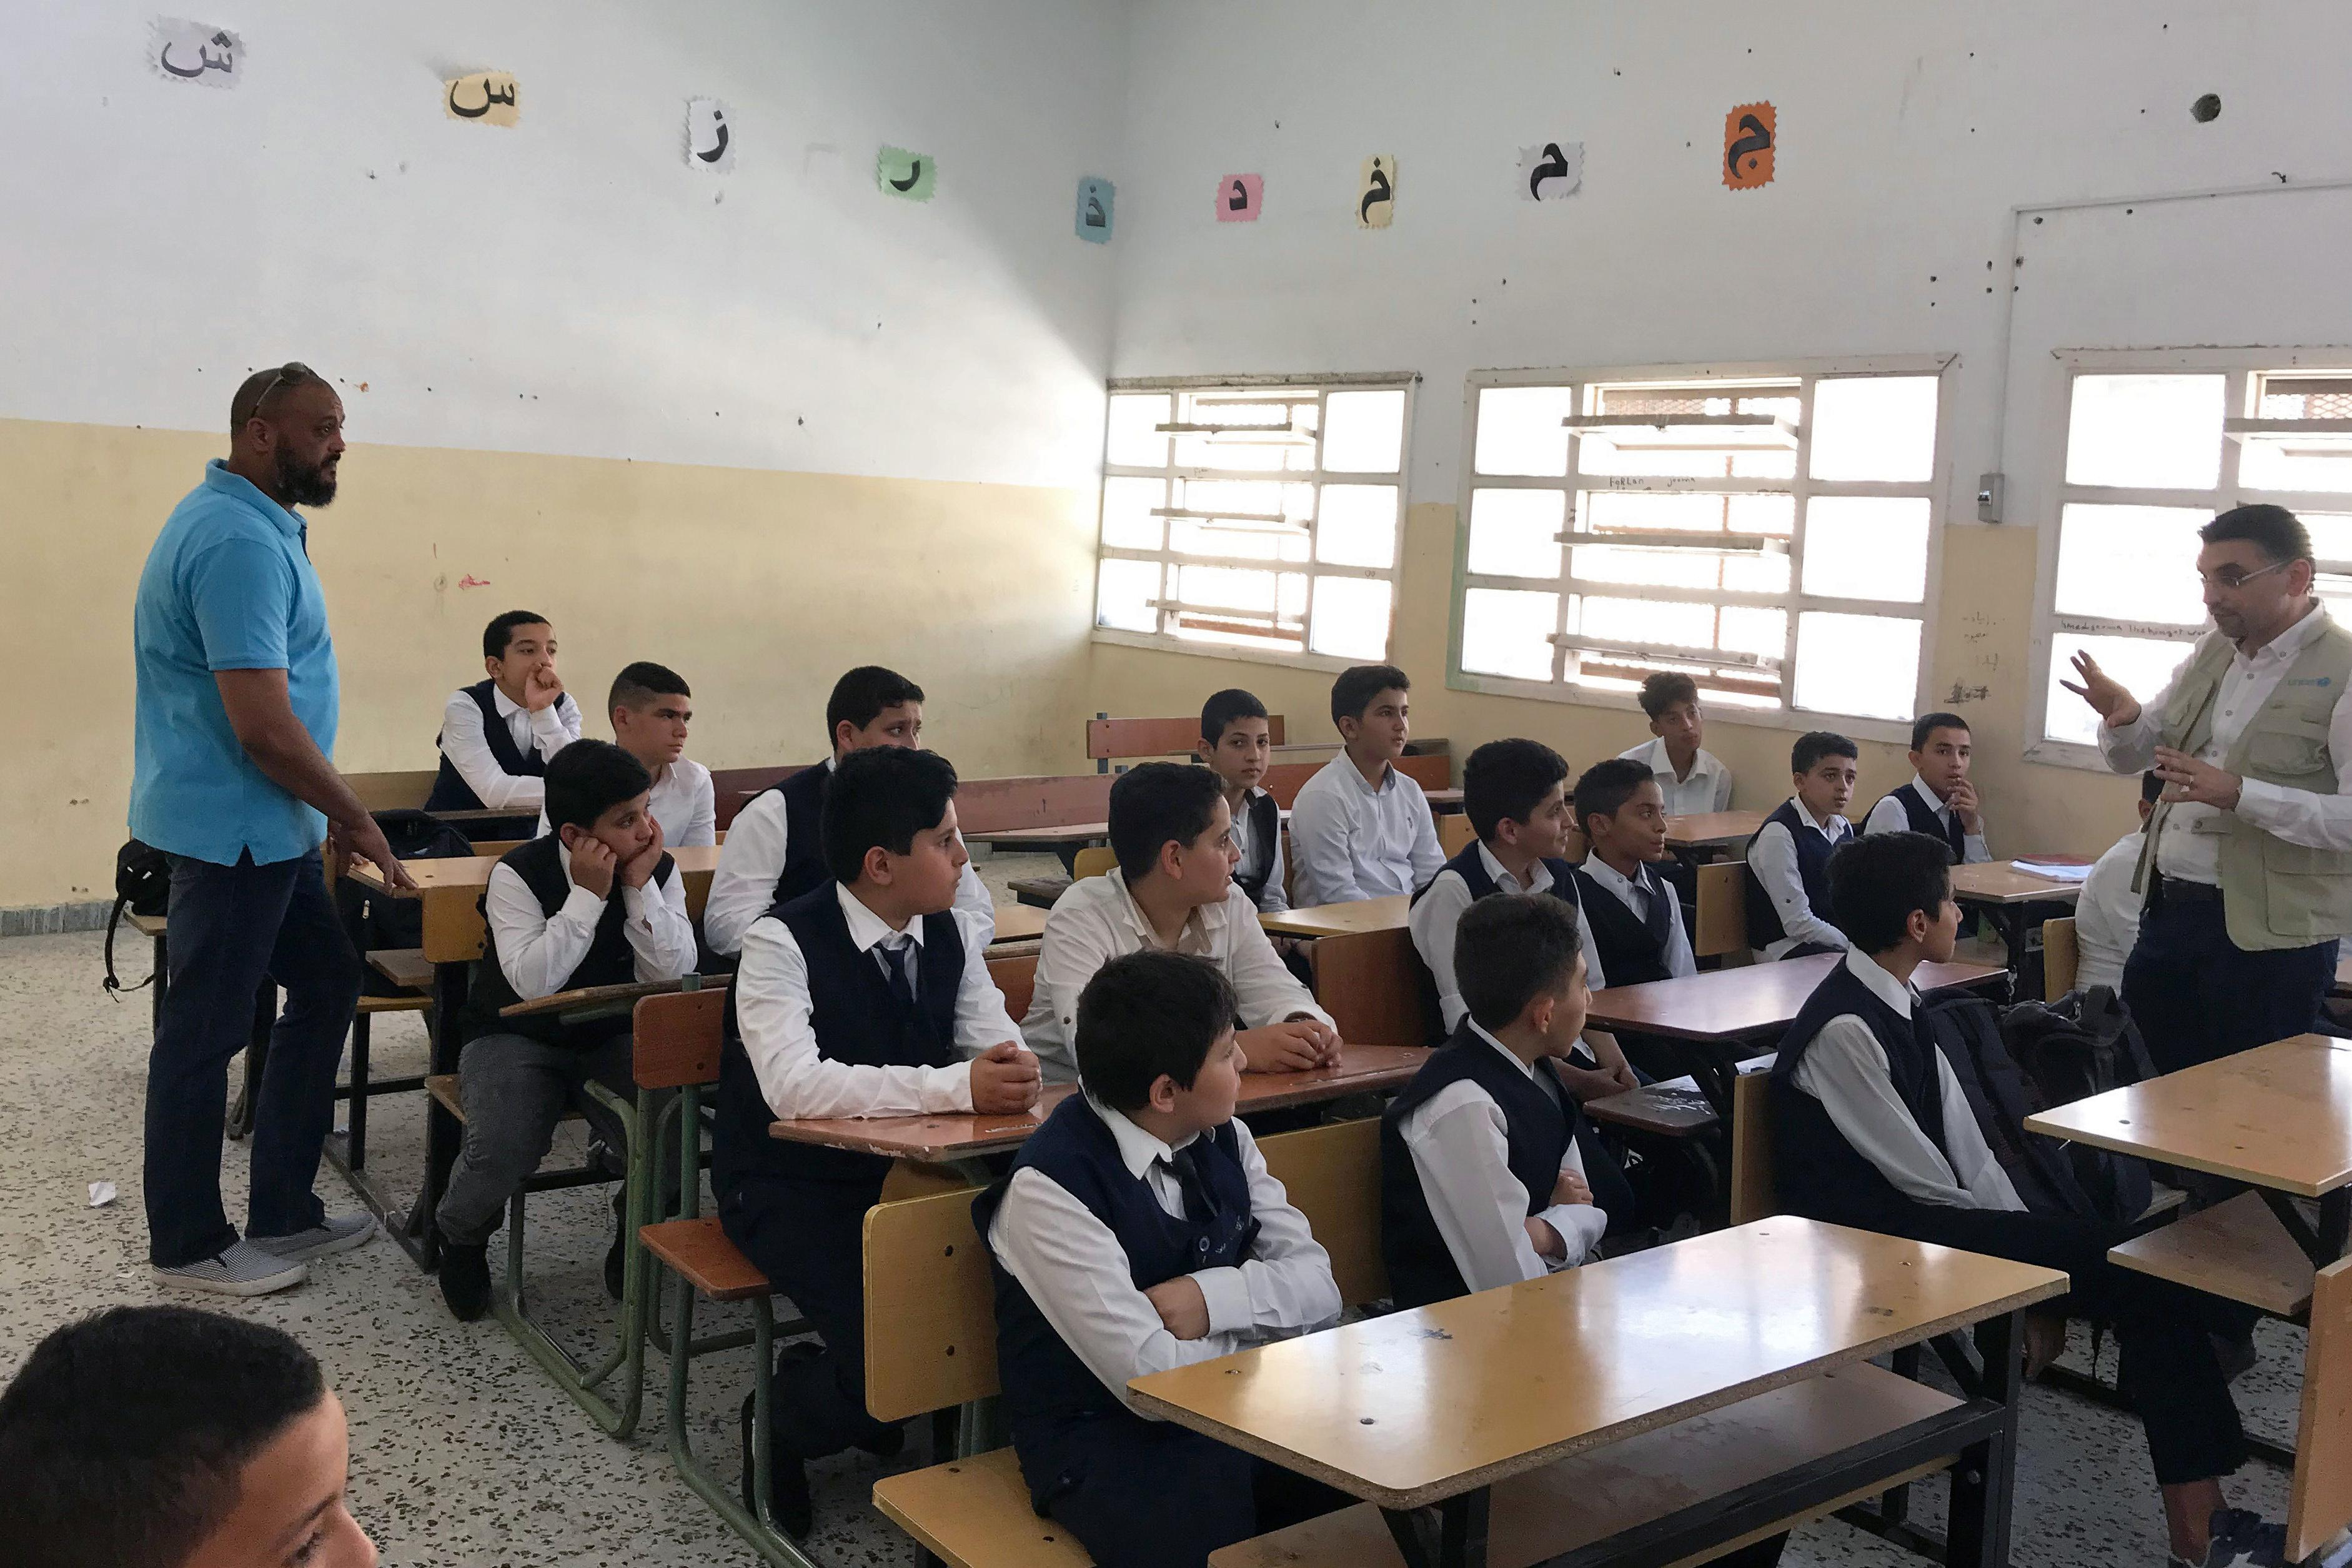 Tripoli's children struggle to study as war reaches the capital